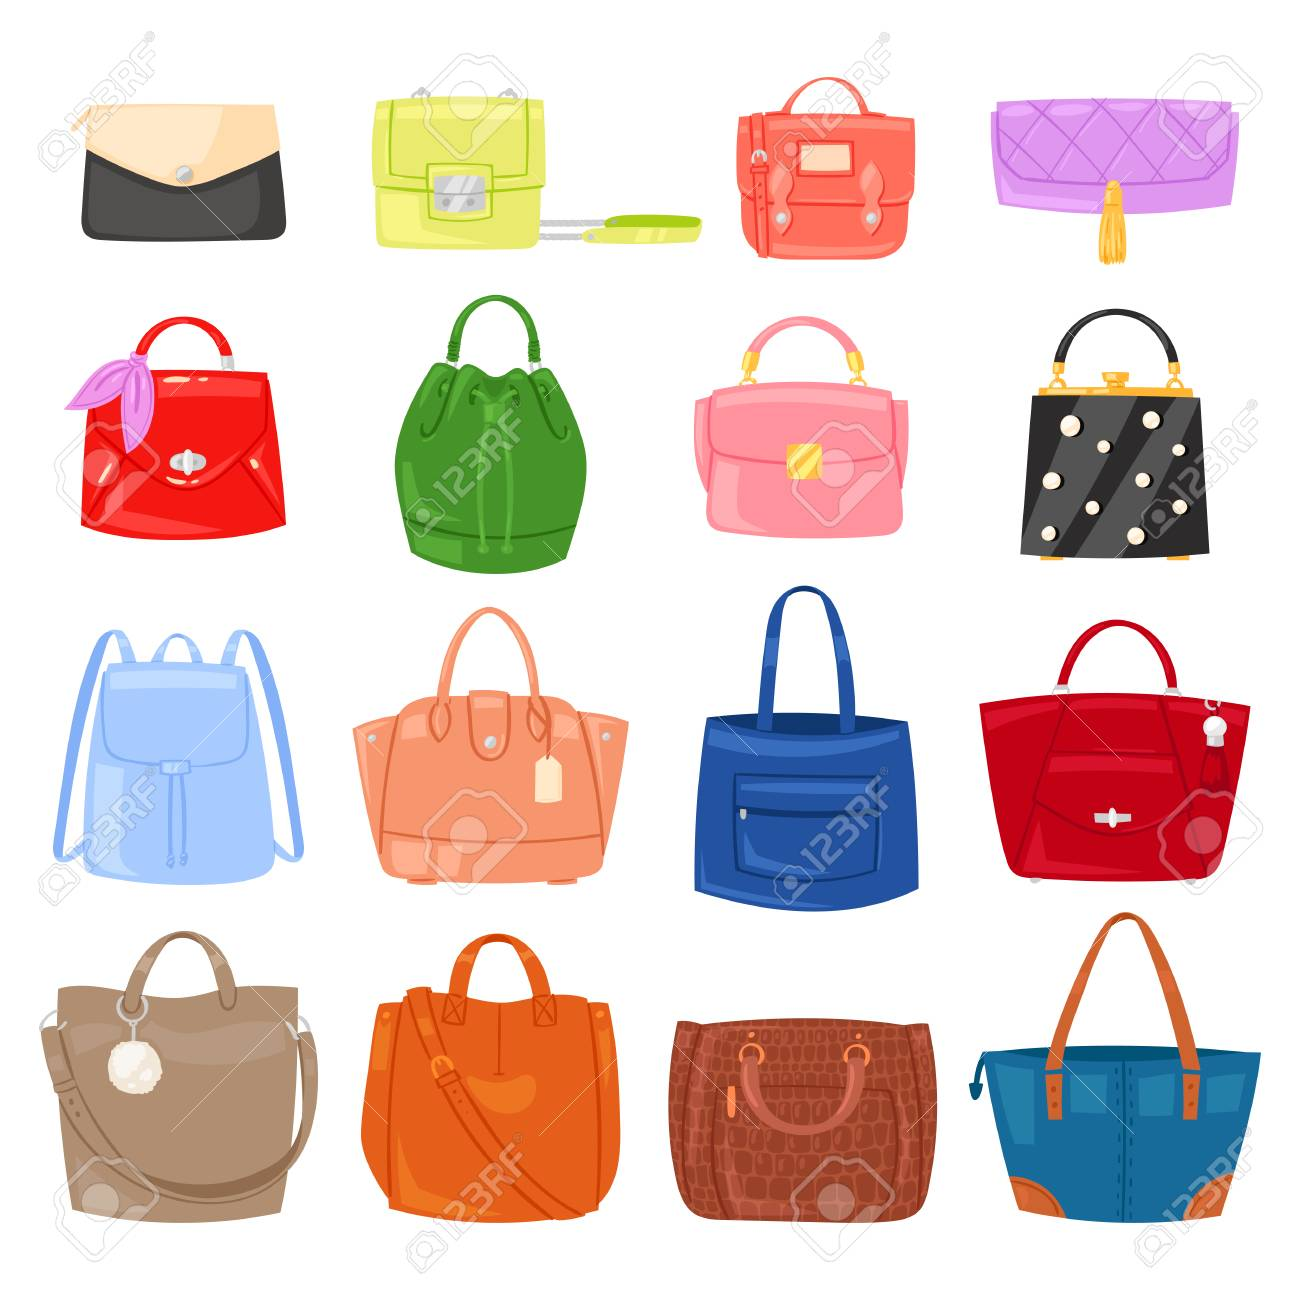 Illustration - Woman bag vector girls handbag or purse and shopping-bag or  clutch from fashion store illustration baggy set of shoppers bagged package  ... ad5fde99fe